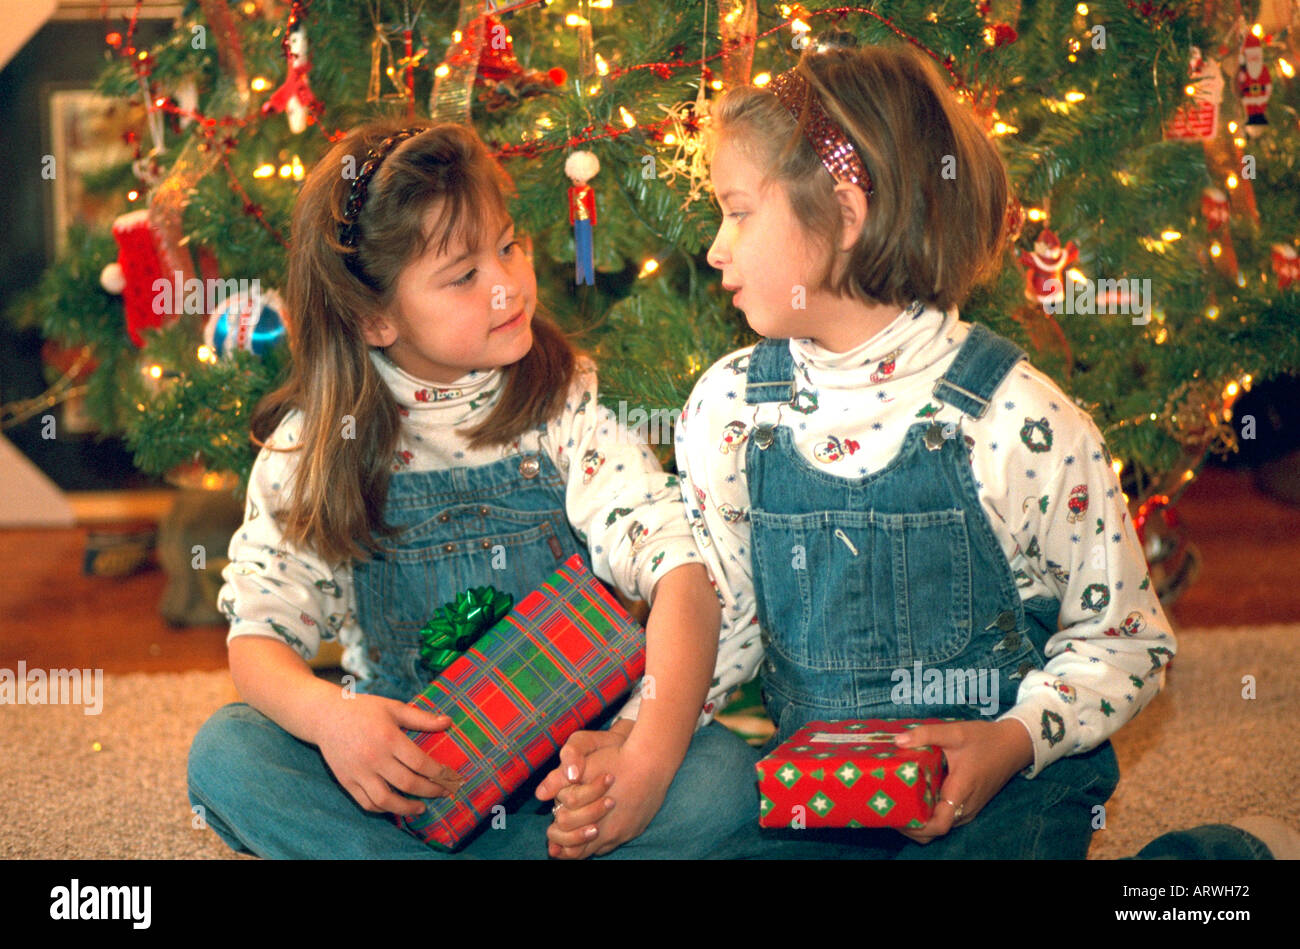 Sisters in bib overalls age 8 and 6 holding wrapped Christmas gifts ...